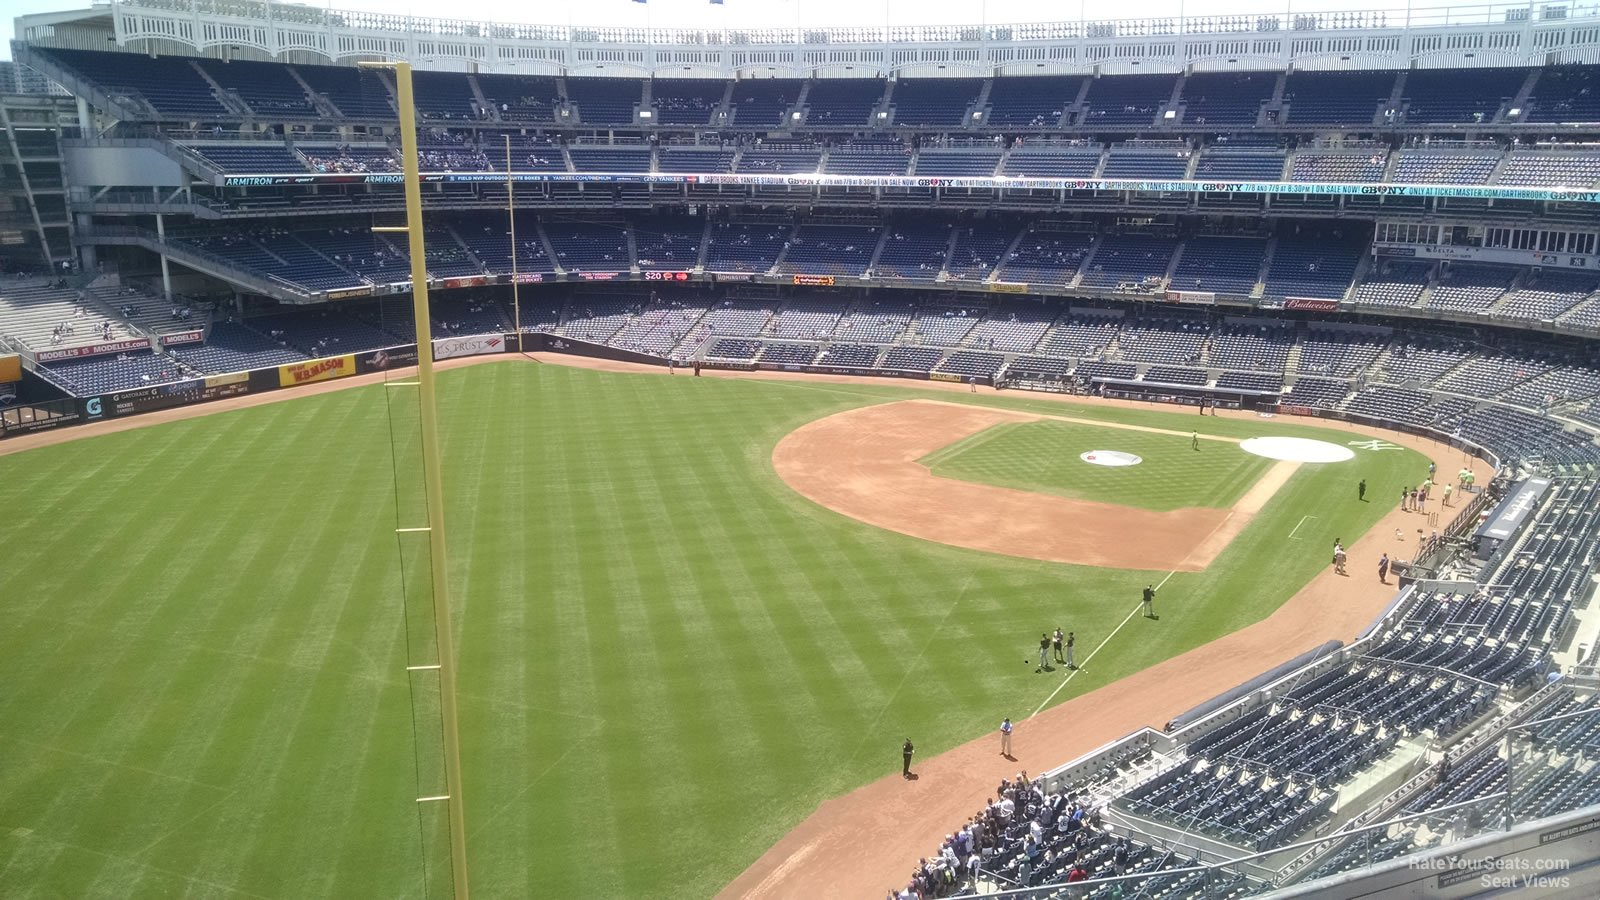 New York Yankees Seat View for Yankee Stadium Section 332A, Row 6